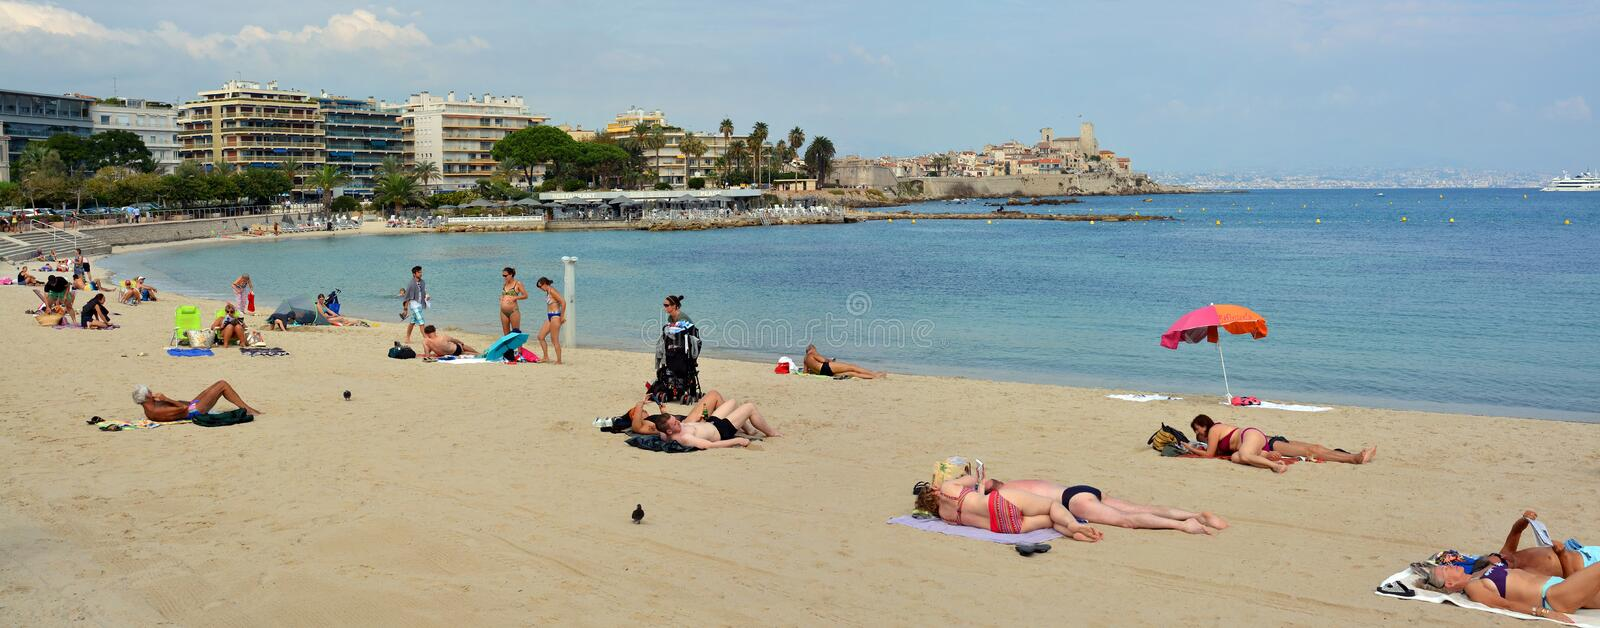 People Sunbathing on Antibes Beach, Provence France stock image